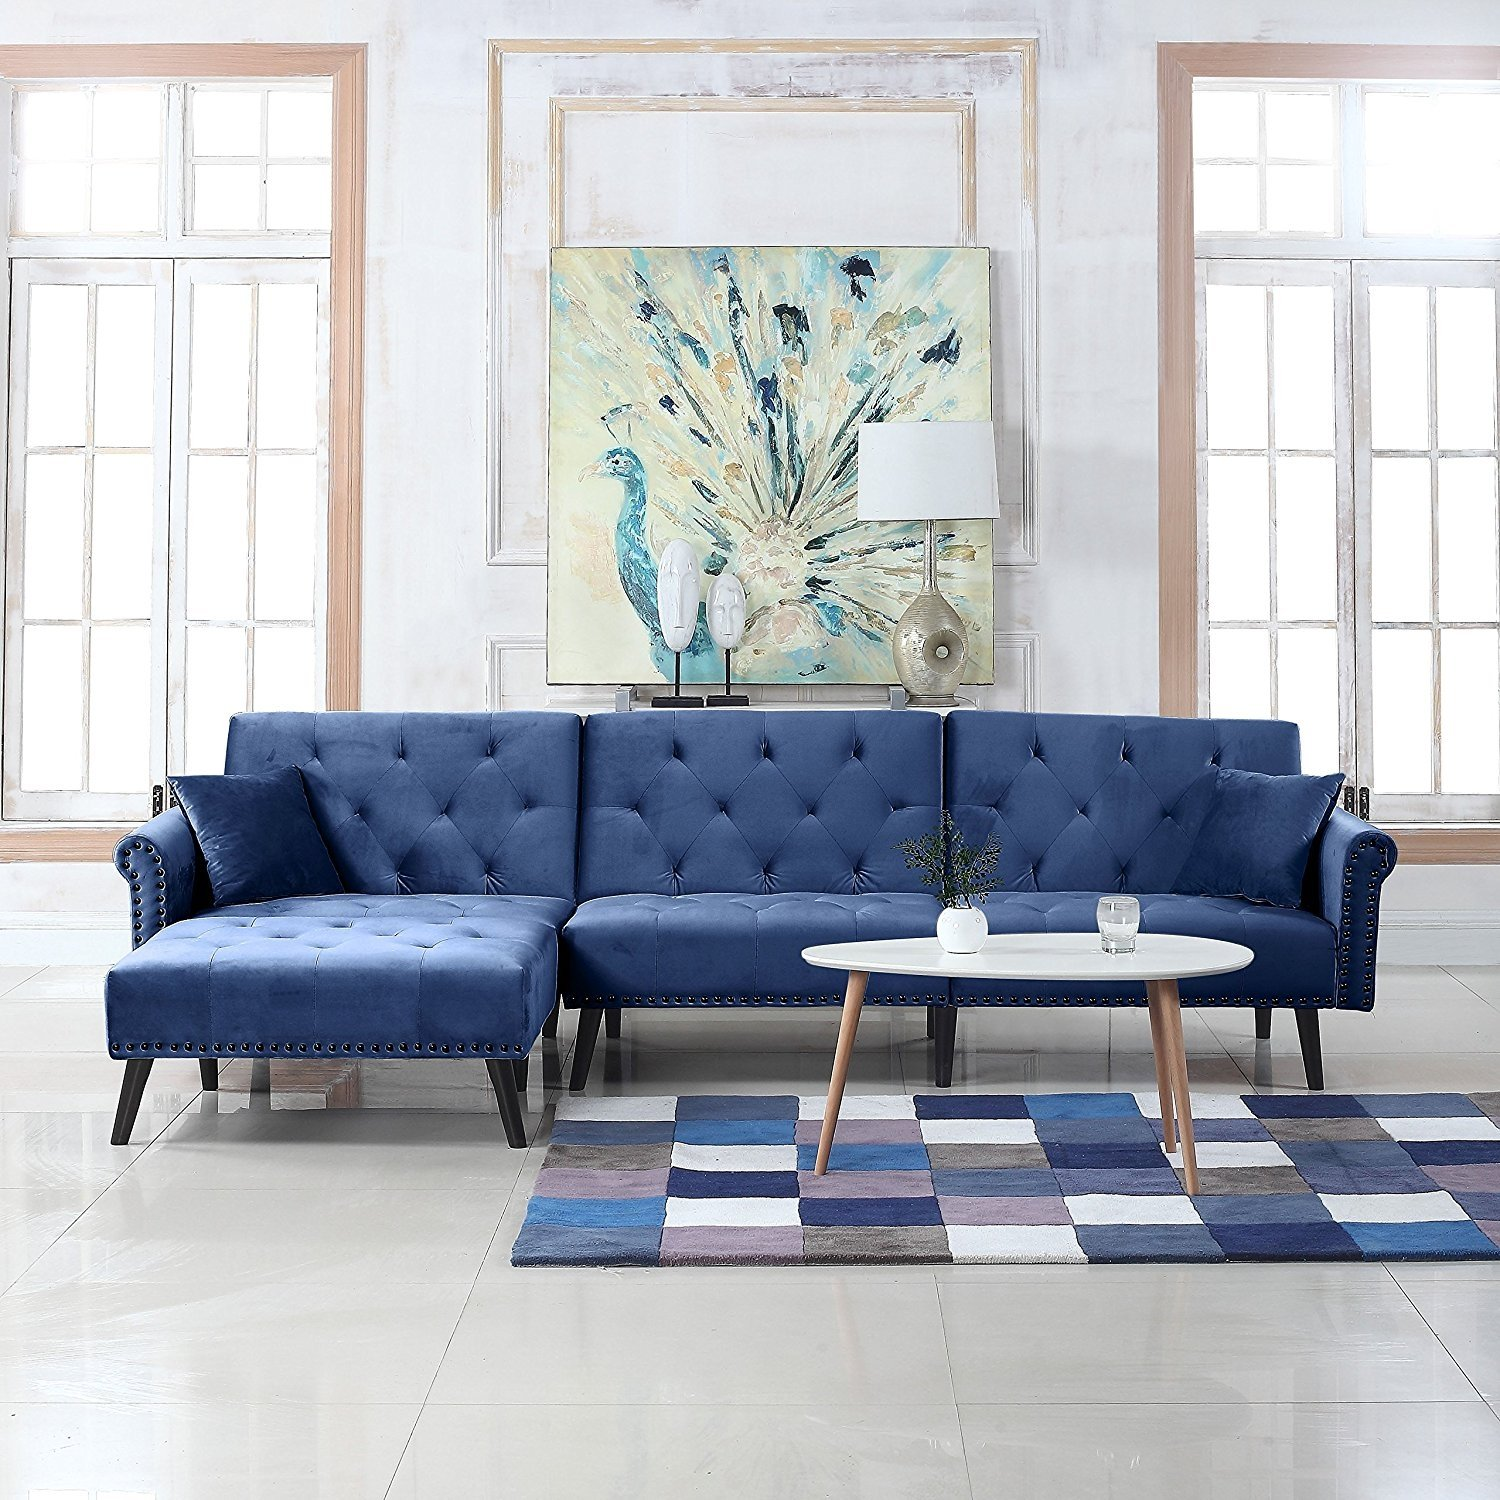 Details about Contemporary Modern Velvet Sleeper Futon Sofa, Mid Century L  Shape Couch, Navy